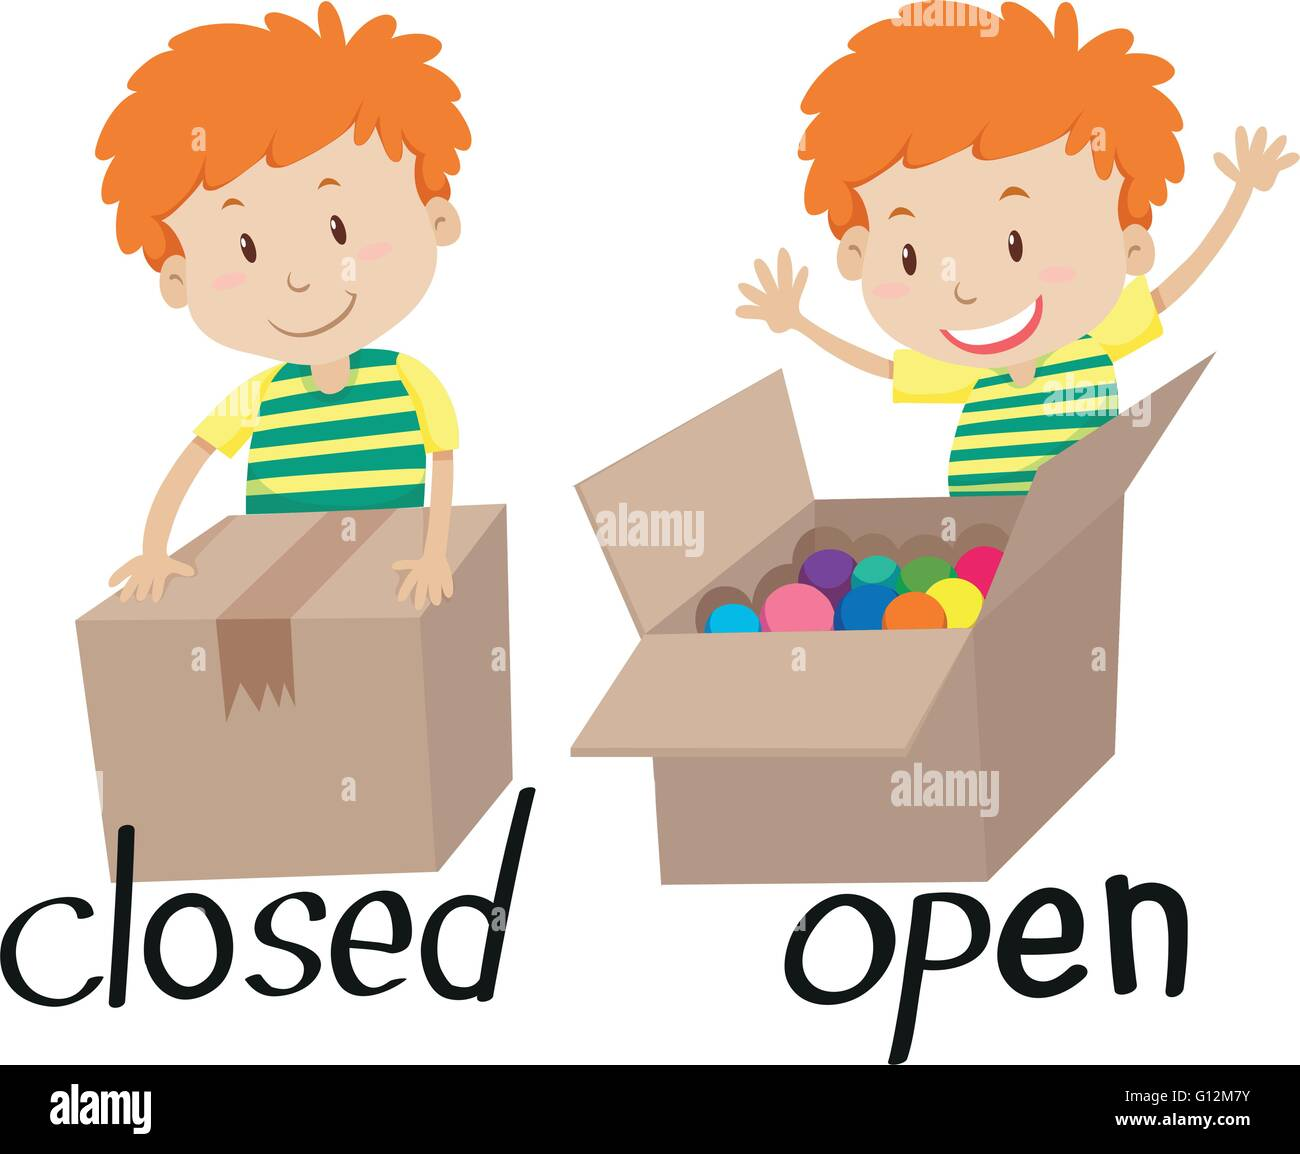 Opposite Adjective Closed And Opened Illustration Stock